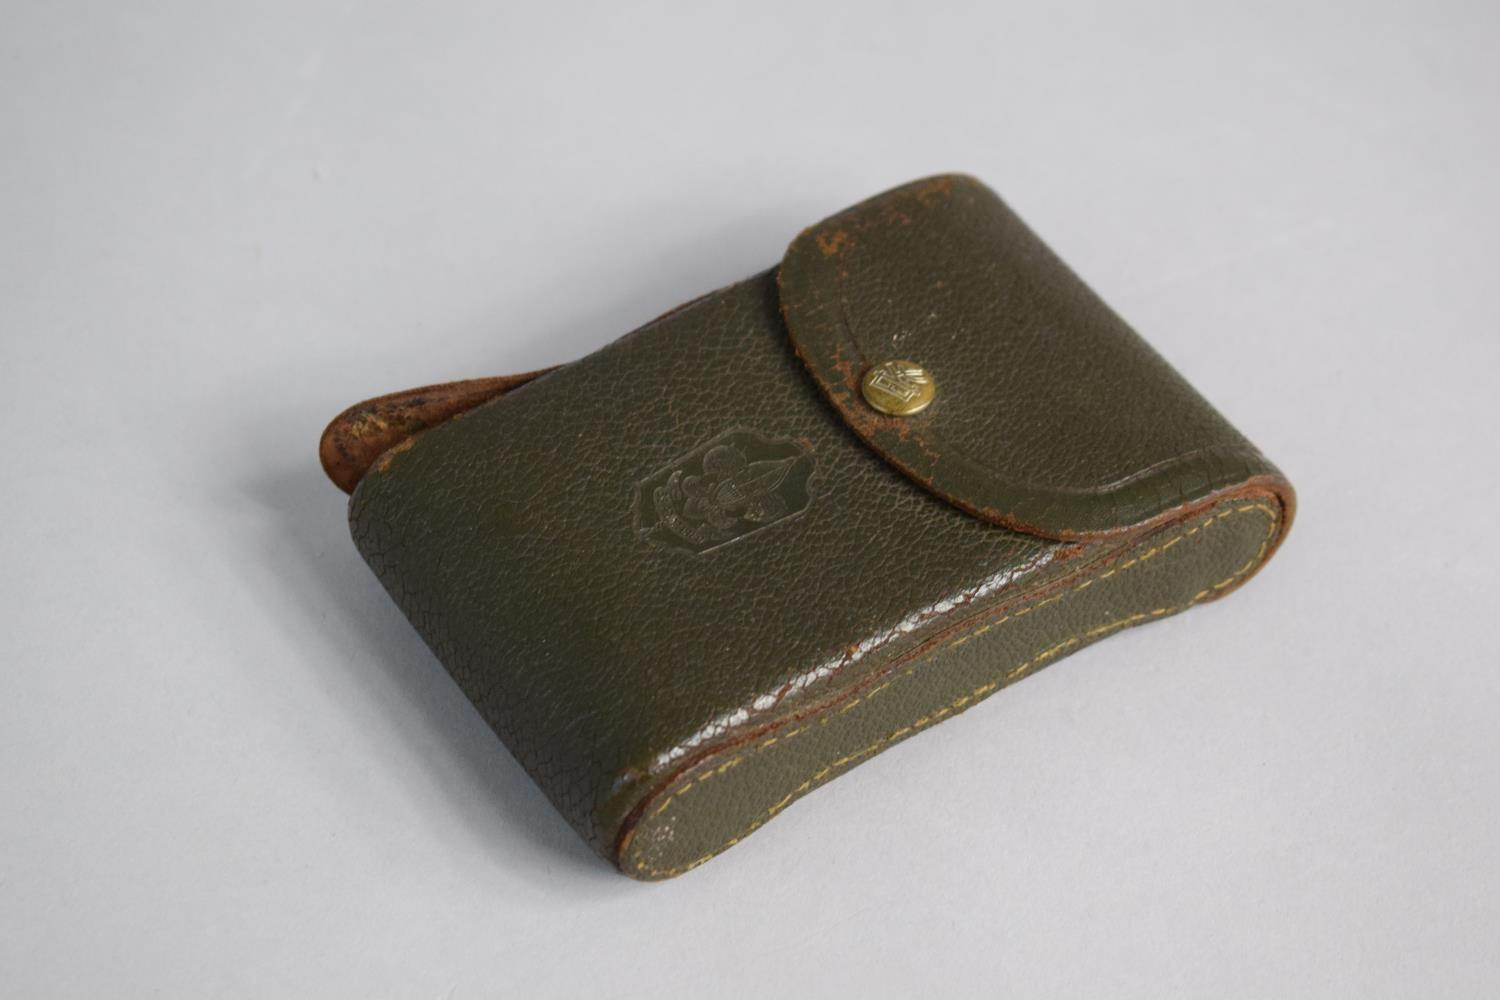 Lot 8 - A Vintage Leather Cased Boy Scout Bellows Camera by Kodak